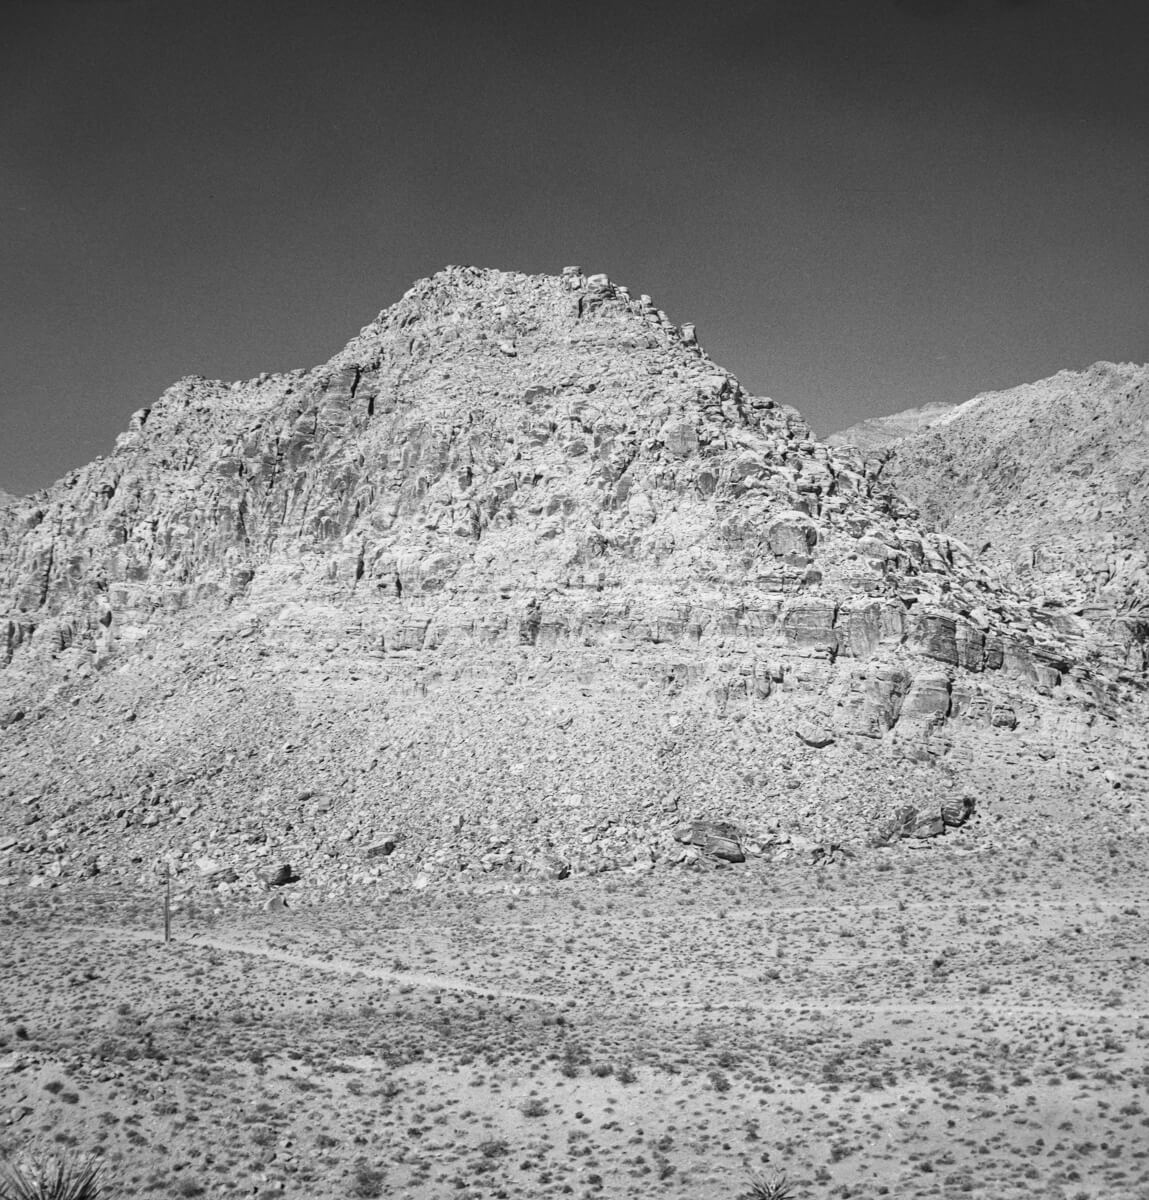 Red Rock Conservation Area - ILFORD FP4 PLUS - Certo Six